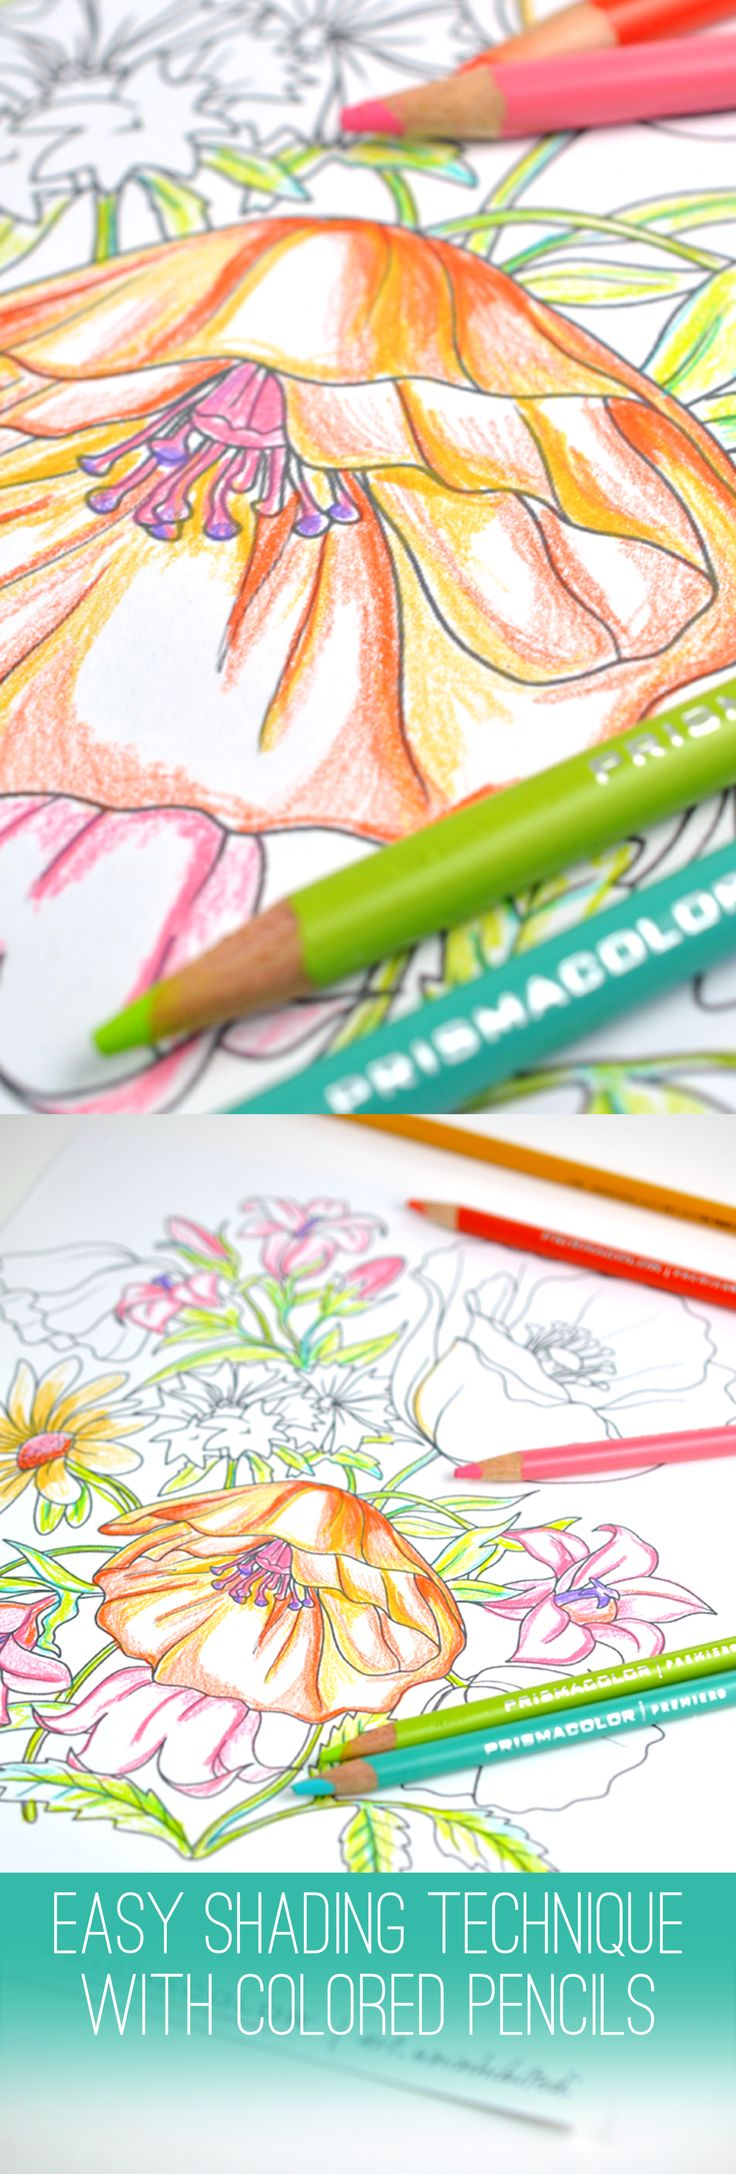 Create beautiful coloring page shading by using two different colors in the same color hue - like yellow and orange, or green and blue. It's so easy with my Prismacolor Premium colored pencils. I found my @pinprismacolor pencils and markers at @michaelsstores. Make sure to check out @michaelsstores coupons for additional savings, in newspapers and online! #relaxandcolor #ColoringwithMichaels #PMedia #ad